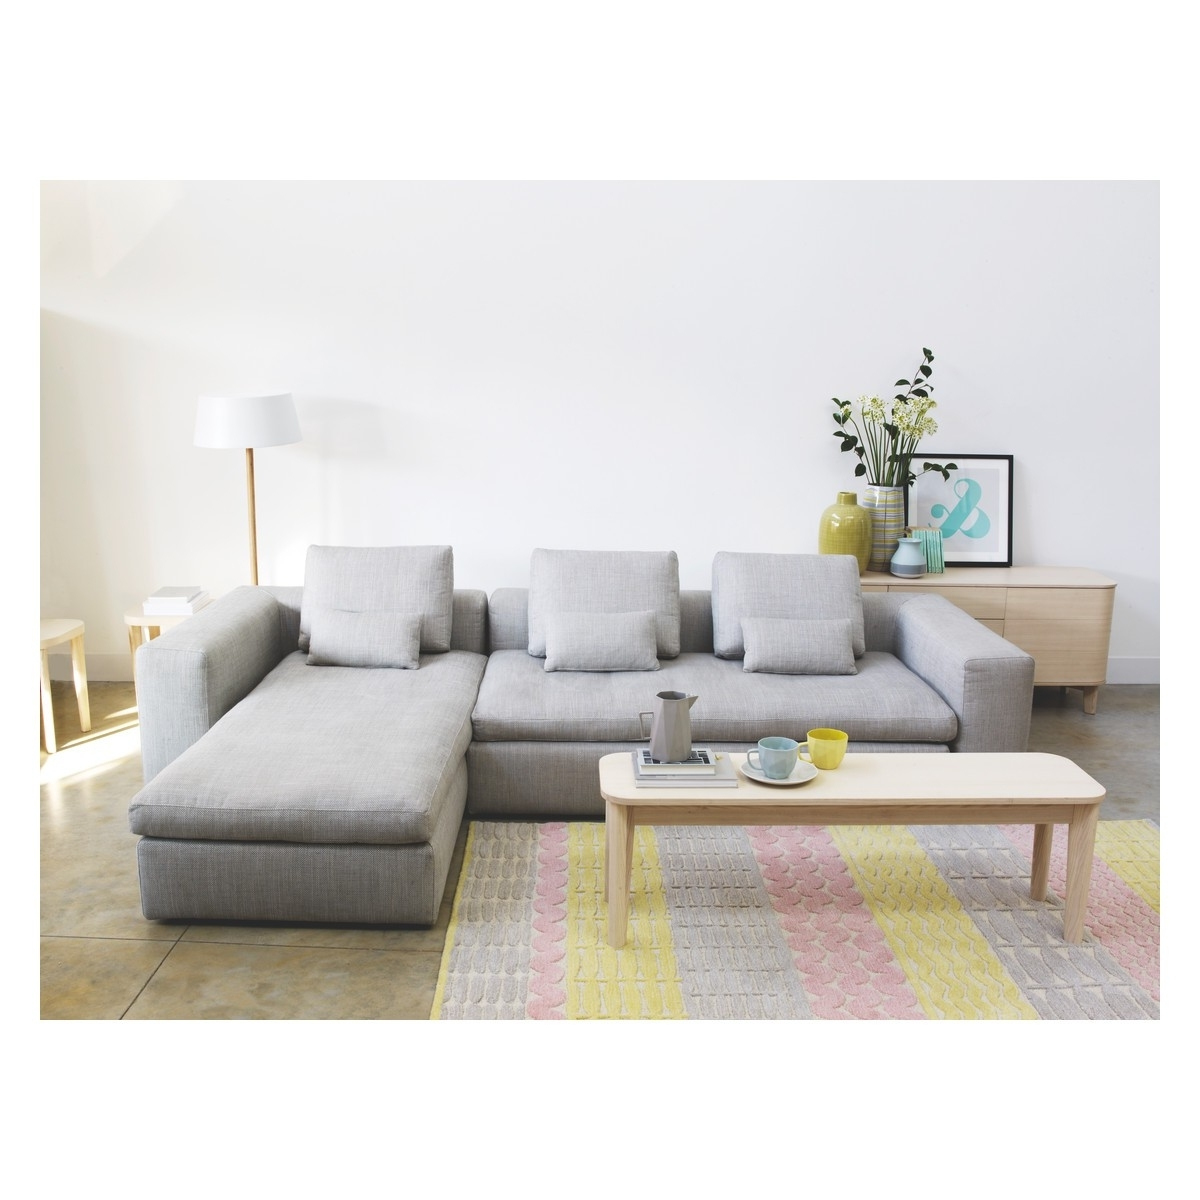 Famous Grey Chaise Sofas Intended For Sofas: Classic Meets Contemporary Chaise Sofa Bed For Ideal Living (View 15 of 15)